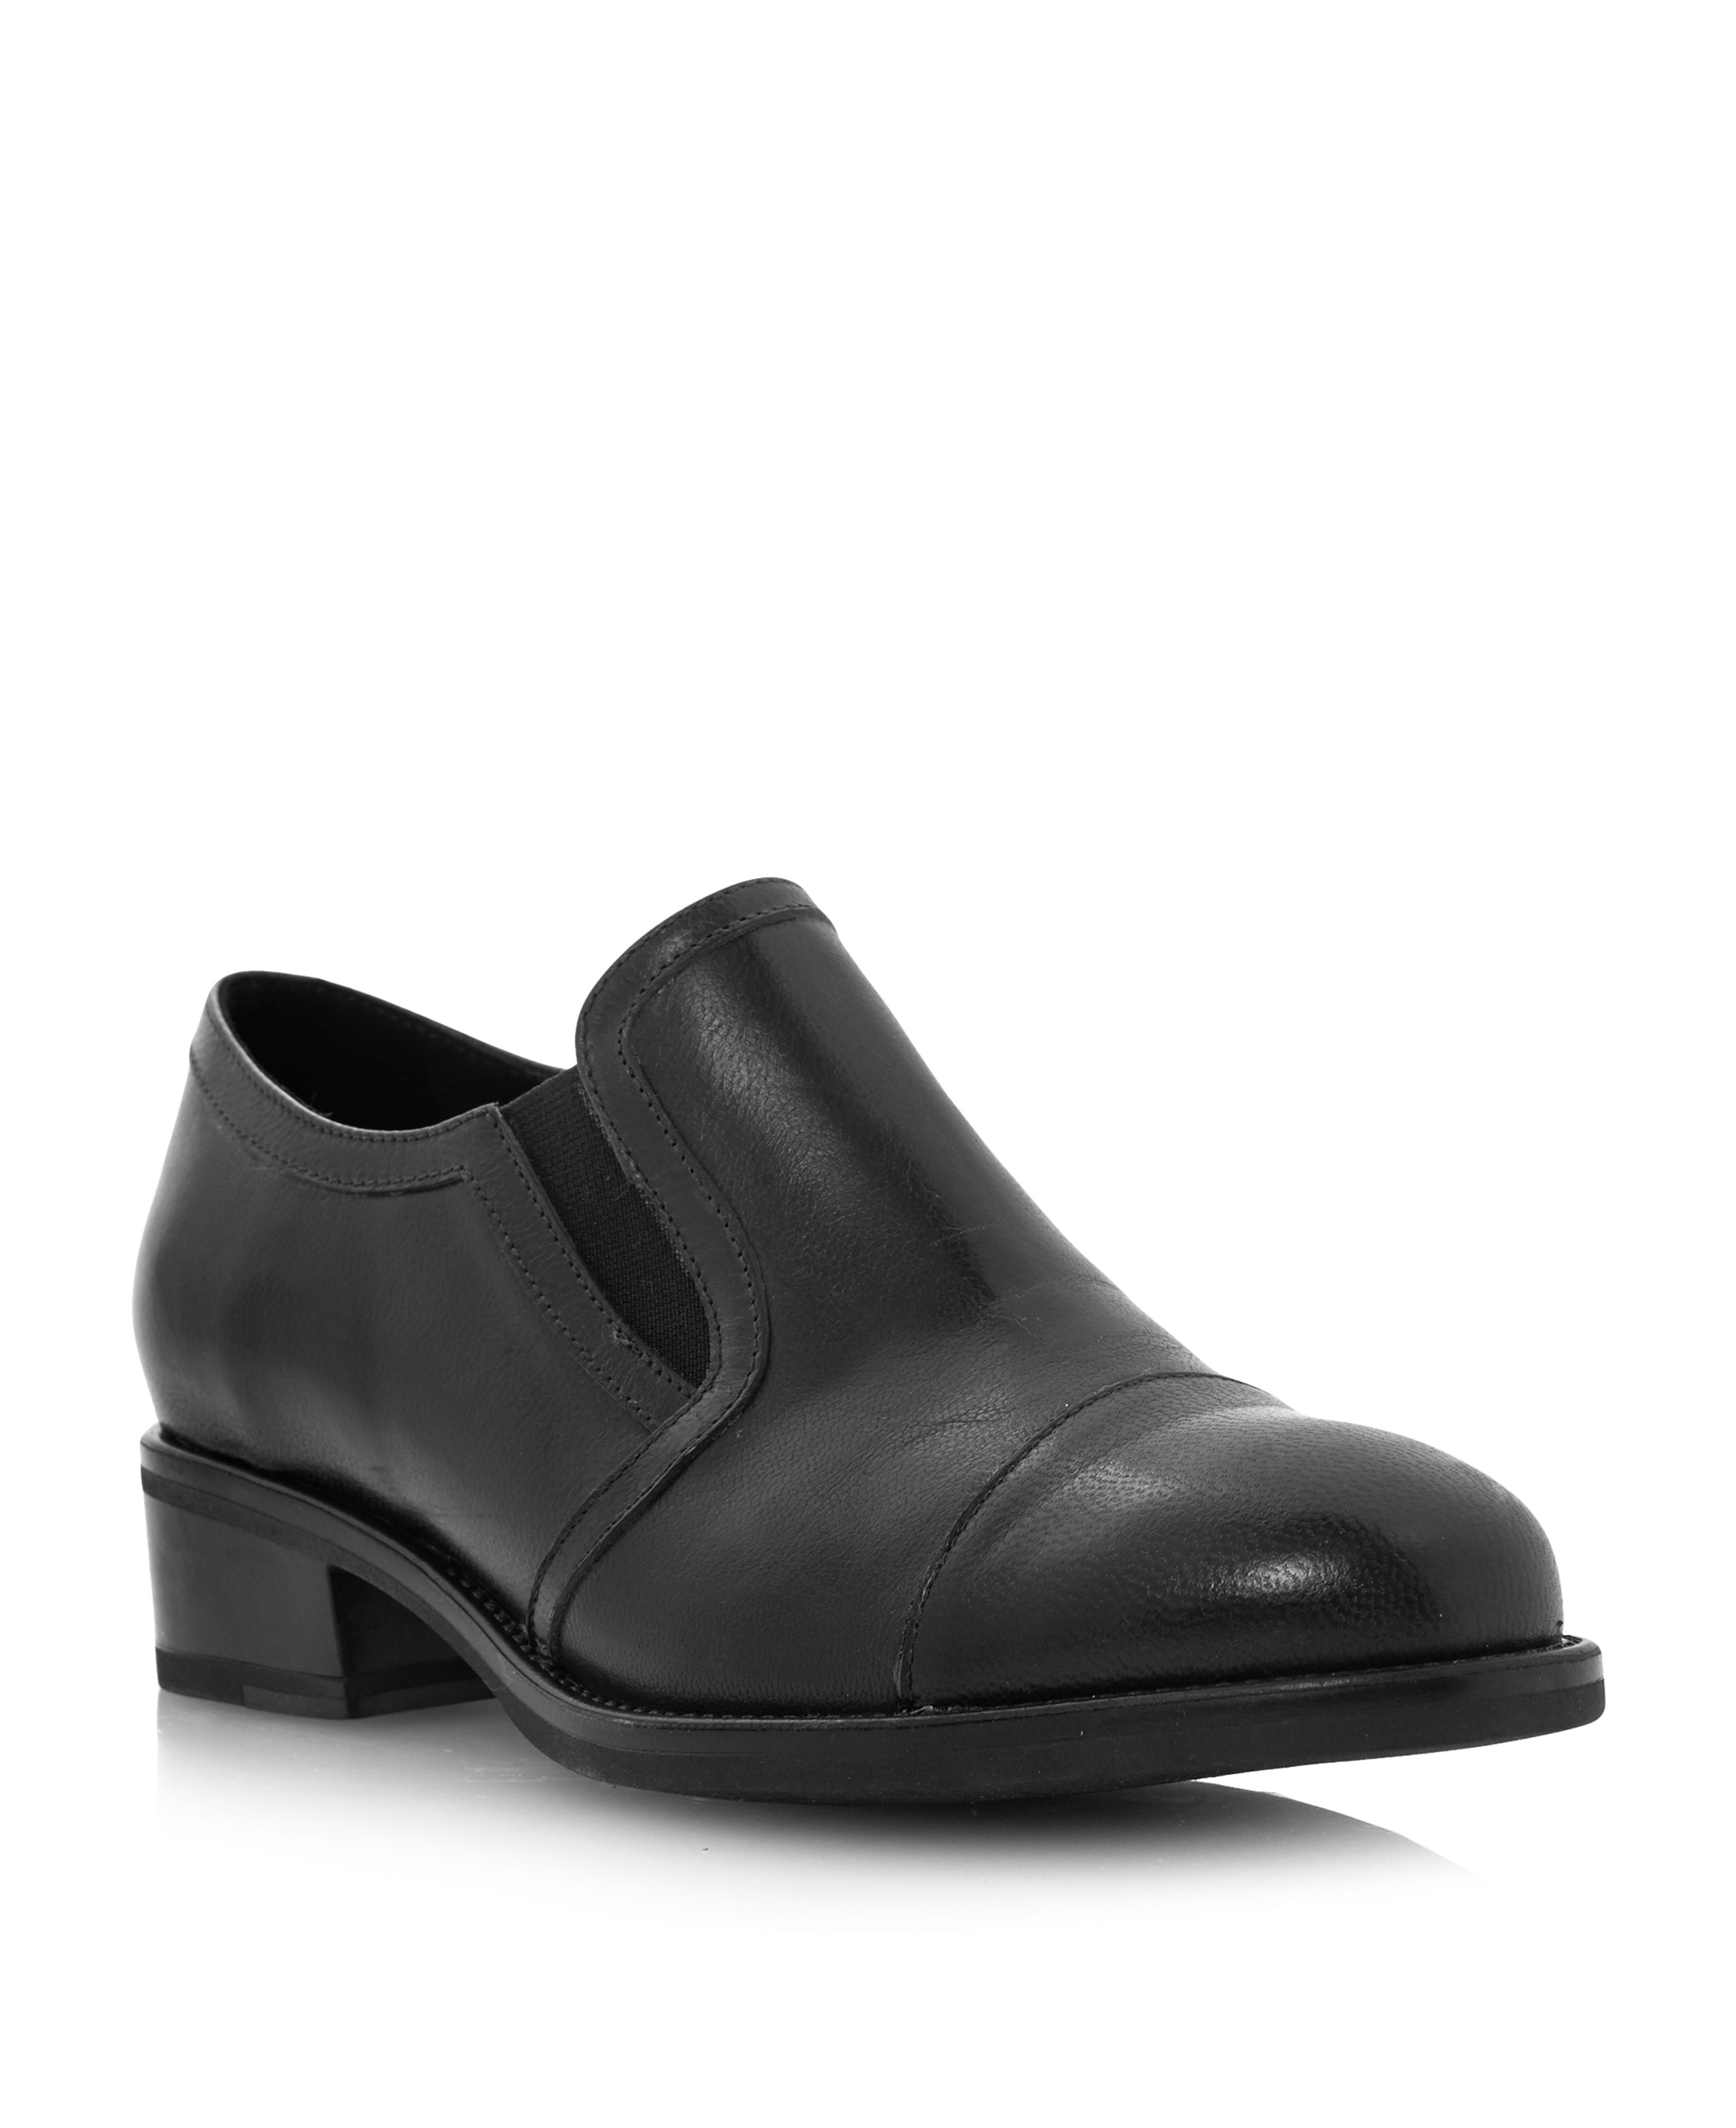 Lockton slip-on block heel loafers